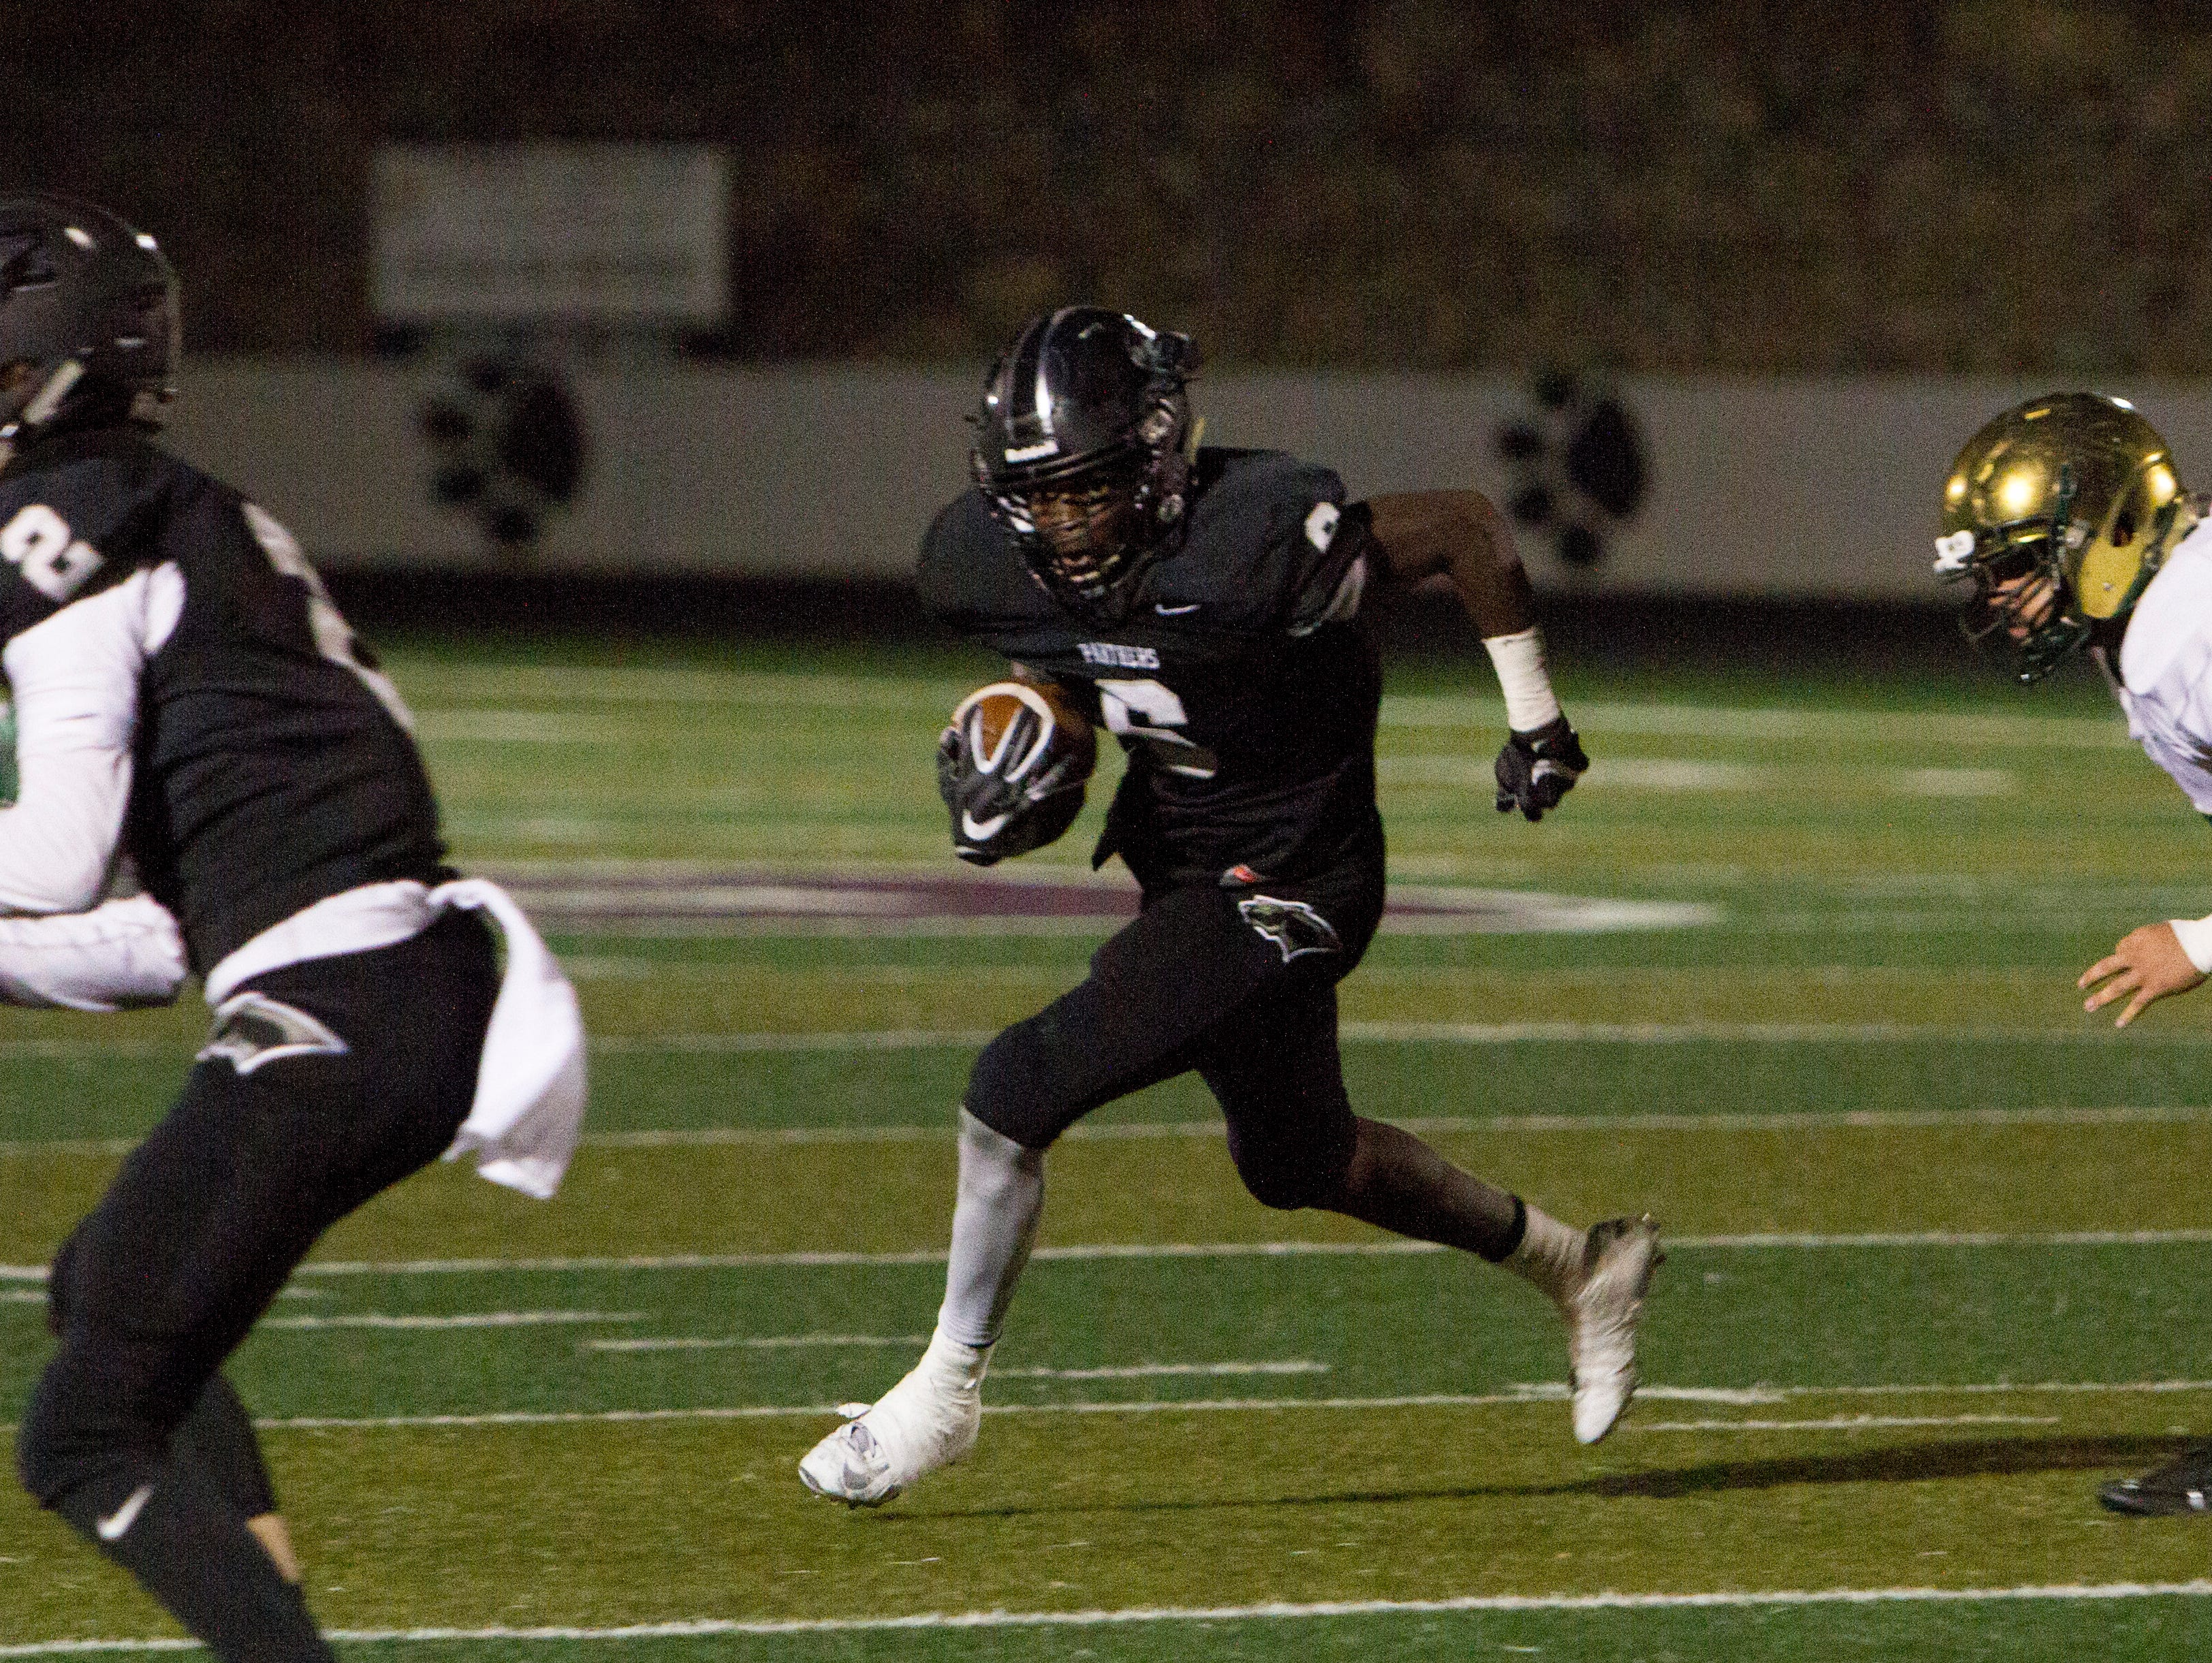 Pine View wide receiver Jacob Mpungi makes a run for yards against Snow Canyon Friday, Sept. 23, 2016.